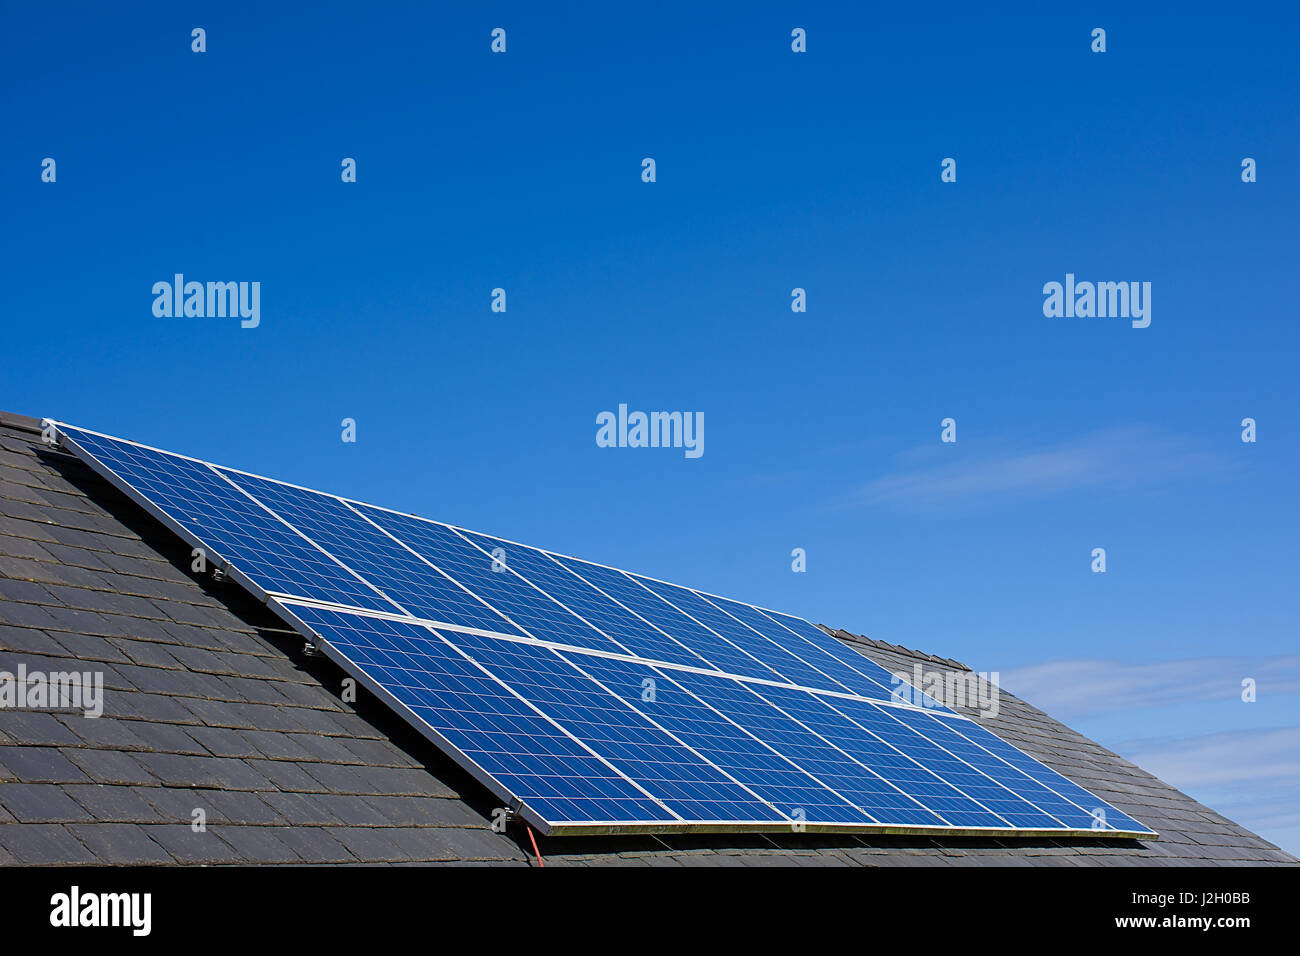 Solar panels on house roof with blue sky in background,North Wales,Uk.Solar power,renewable energy source,environmental - Stock Image